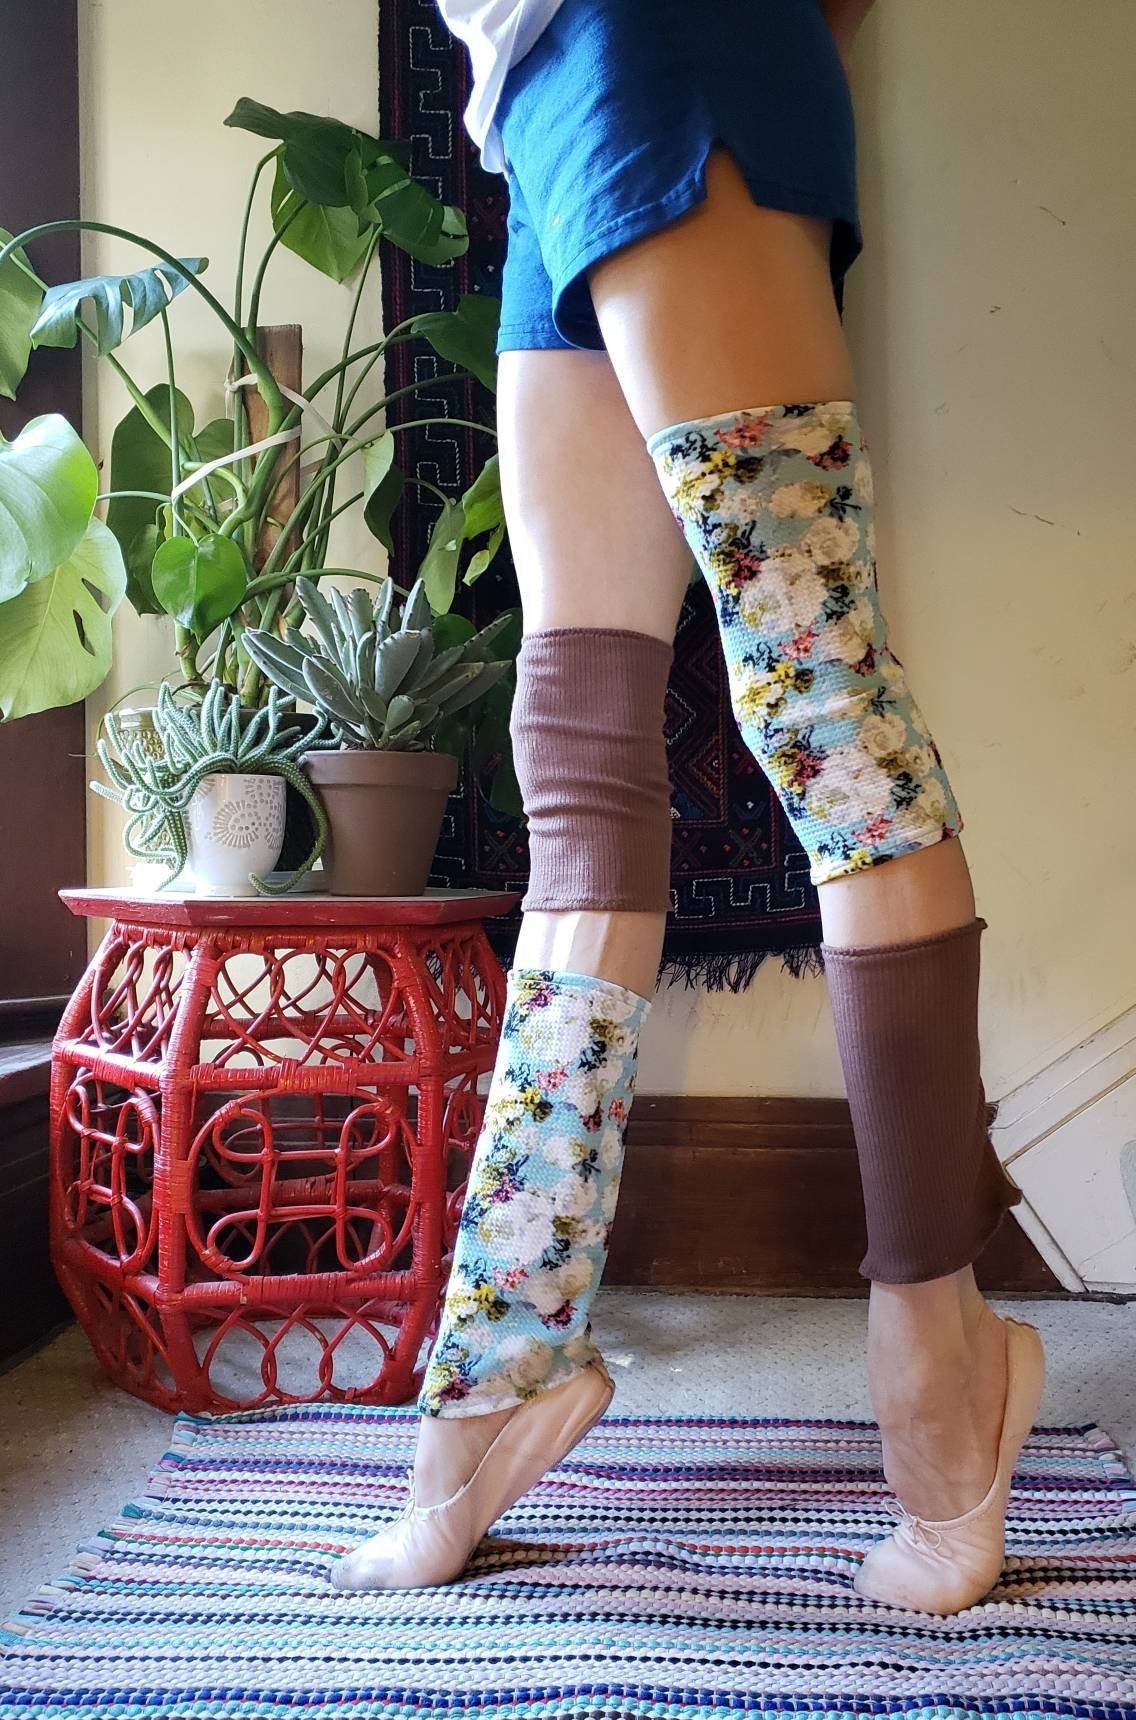 Pickystitches - Mini & Full length leg warmers that will brighten your day! Made by Ava Chatterson of Sacramento Ballet